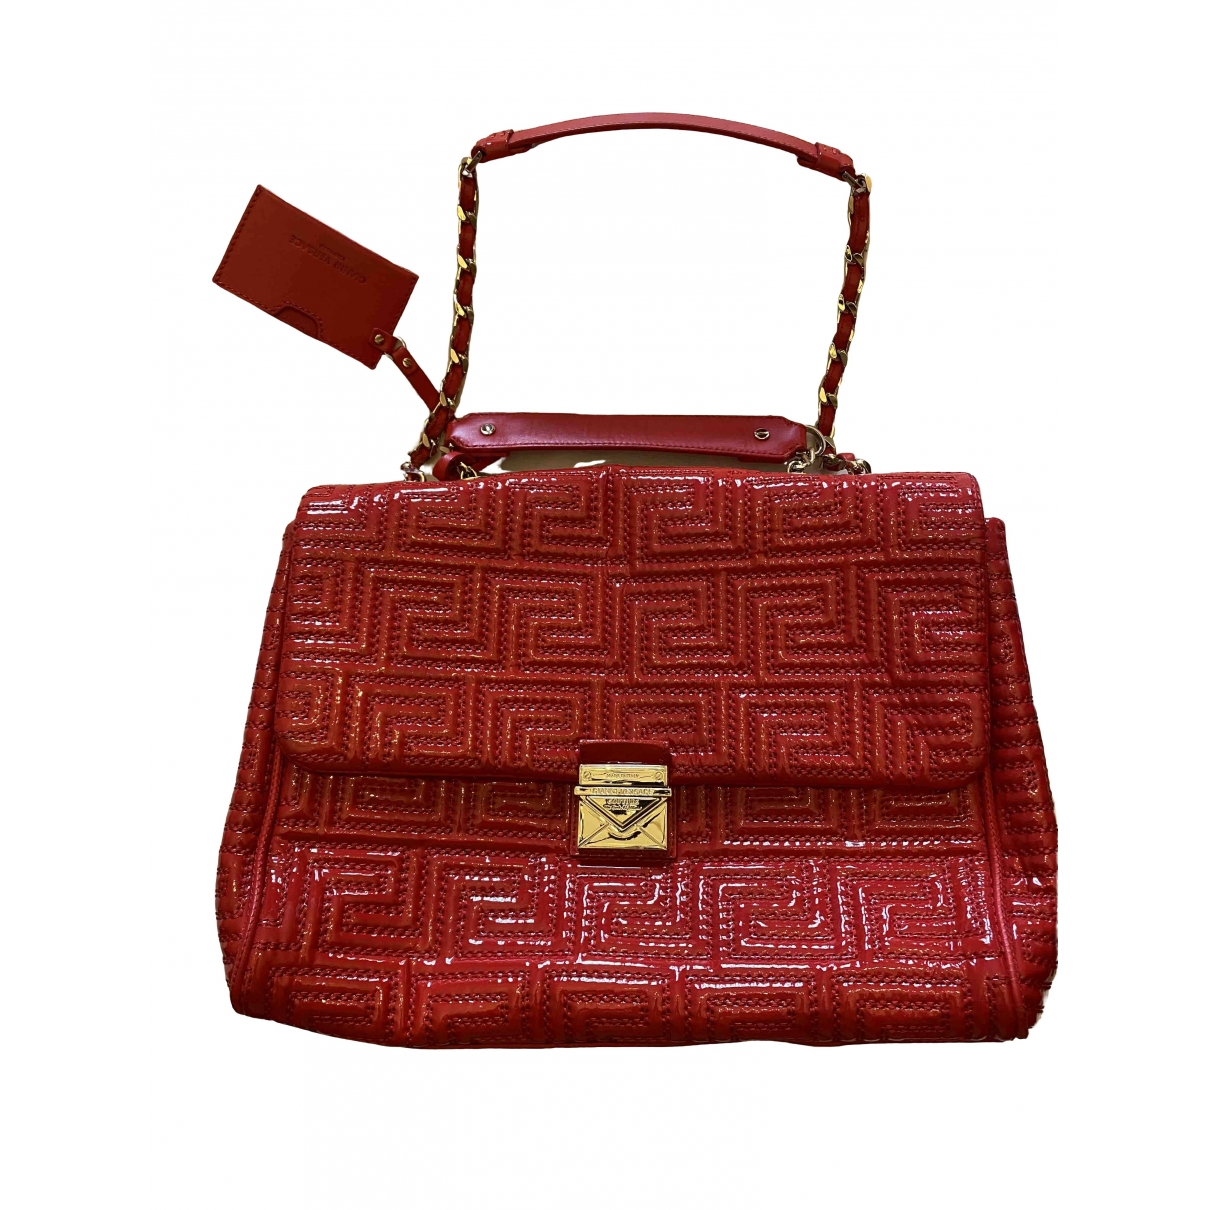 Versace \N Red Patent leather handbag for Women \N